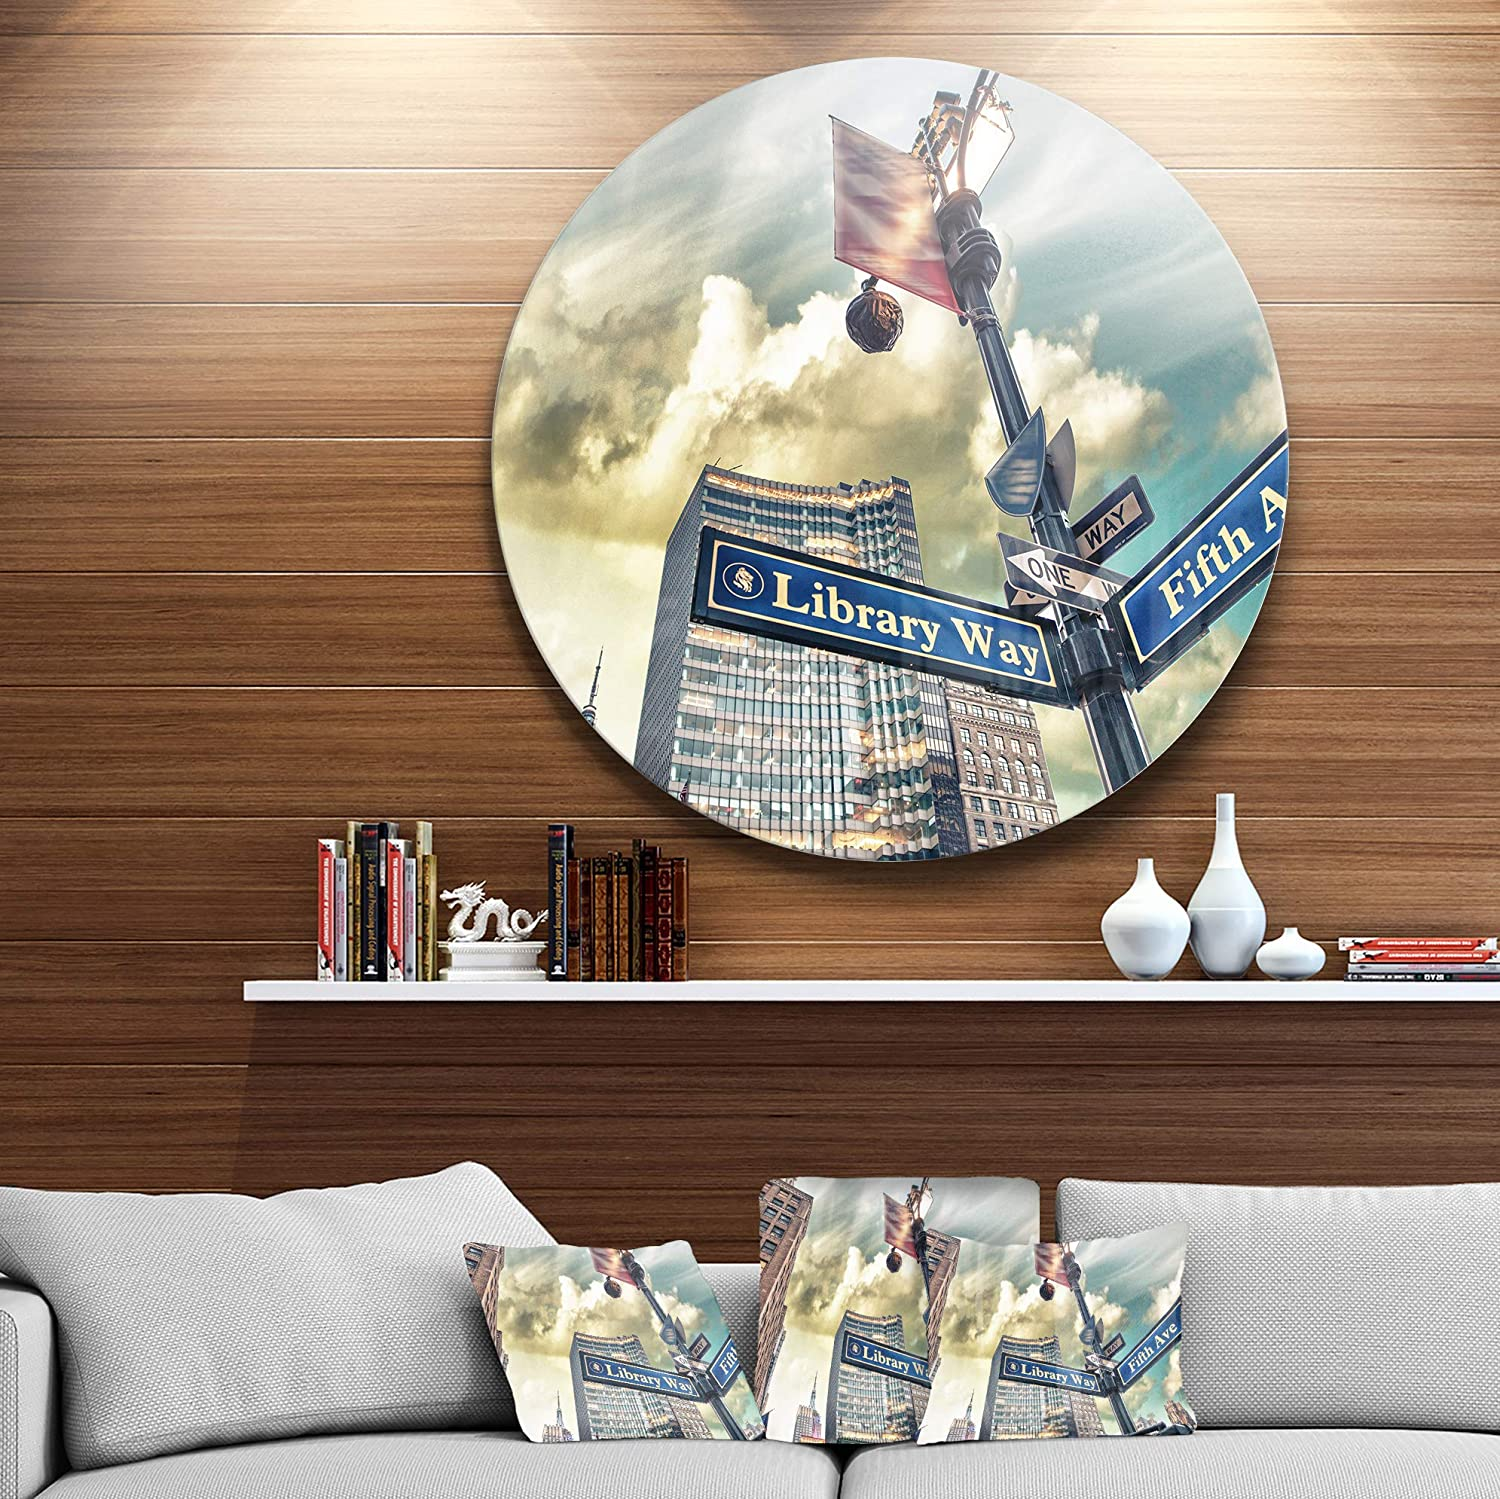 Designart Library Way and 5th Avenue Street Signs Modern Cityscape Round Wall Art Blue 11 H x 11 W x 1 D 1P Disc of 11